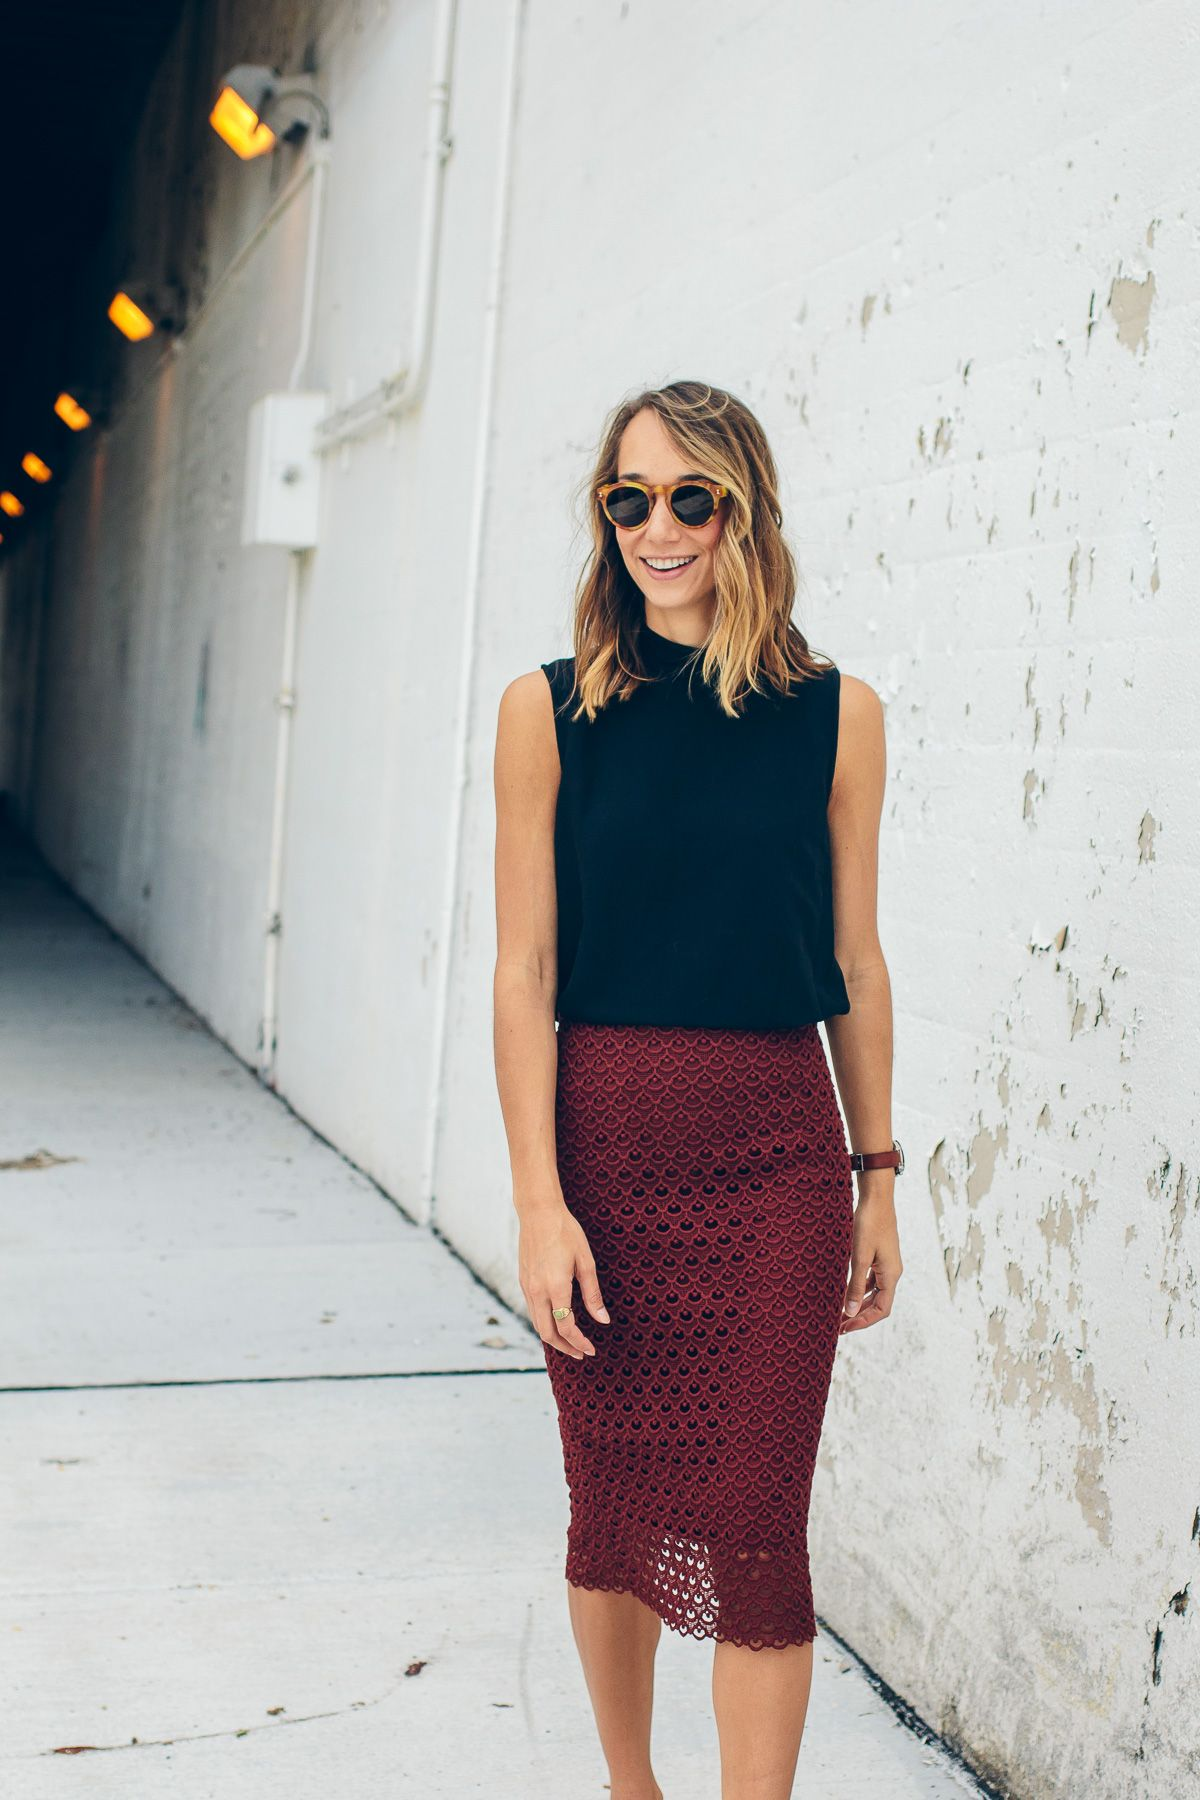 Work Outfits That Look Great | The Fox & She | Fashion Blog Chicago